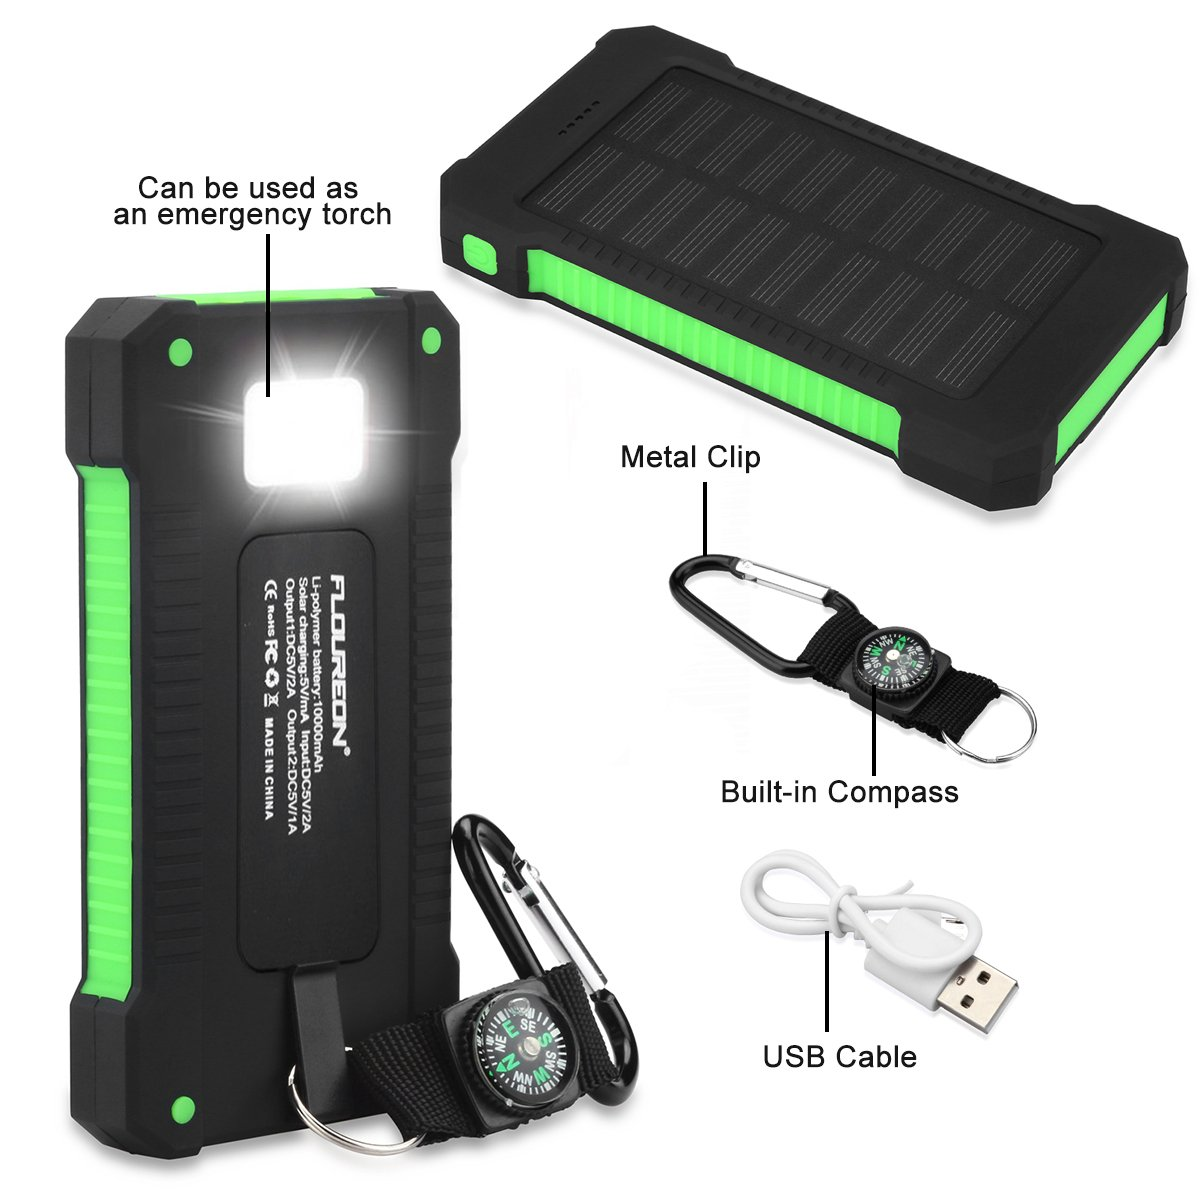 FLOUREON 10,000mAh Solar charger Power Bank Portable Phone Charger External Battery Charger with Dual 2.1A USB LED Flashlight Output Charging for iPhone 8/ 8 Plus/ X/ 7/ 6s, Samsung Galaxy S8/ S7/ S6 and More (Green)